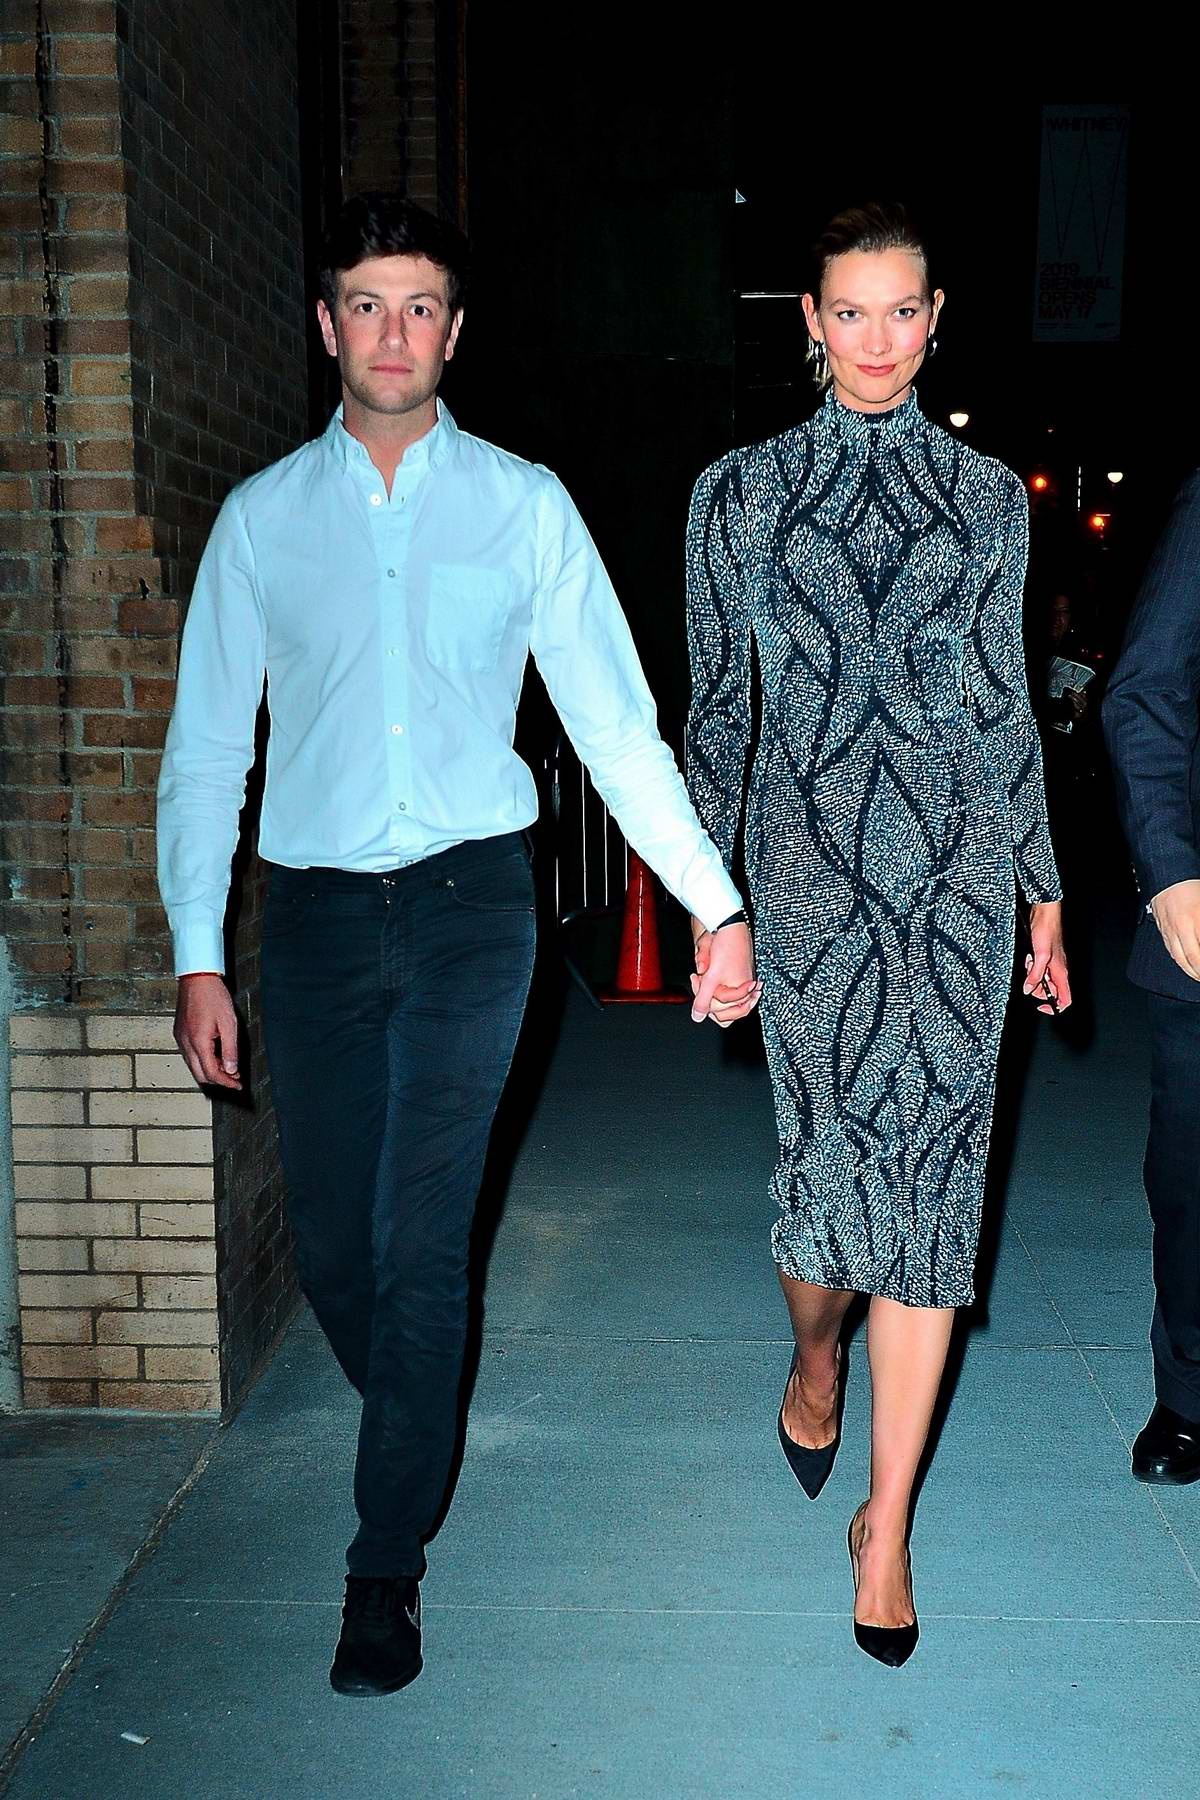 Karlie Kloss and Joshua Kushner are all smiles as they step out holding hands after the Project Runway event in New York City